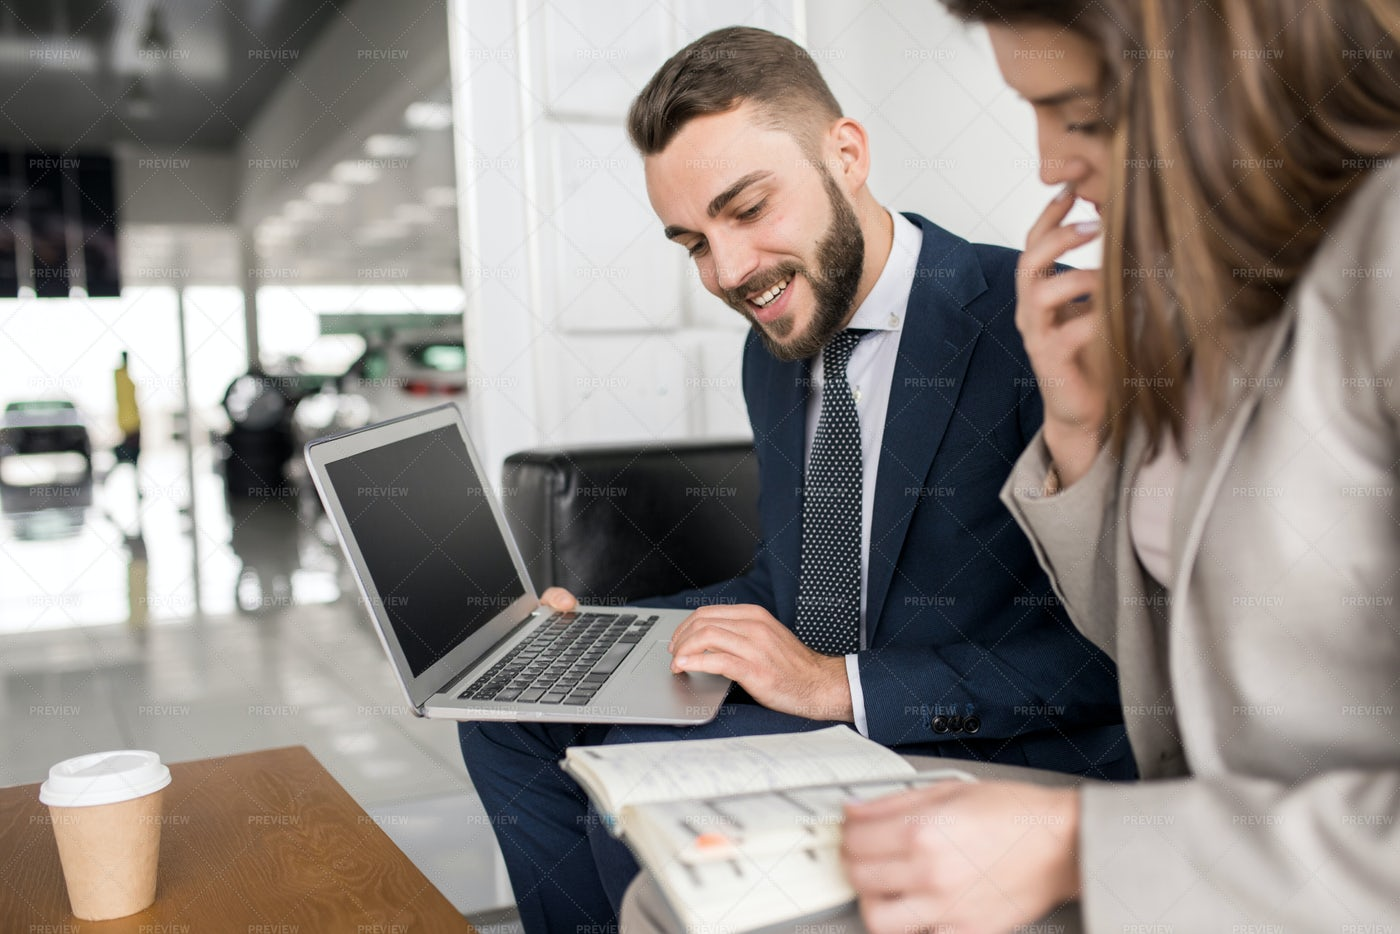 Successful Business People Working...: Stock Photos